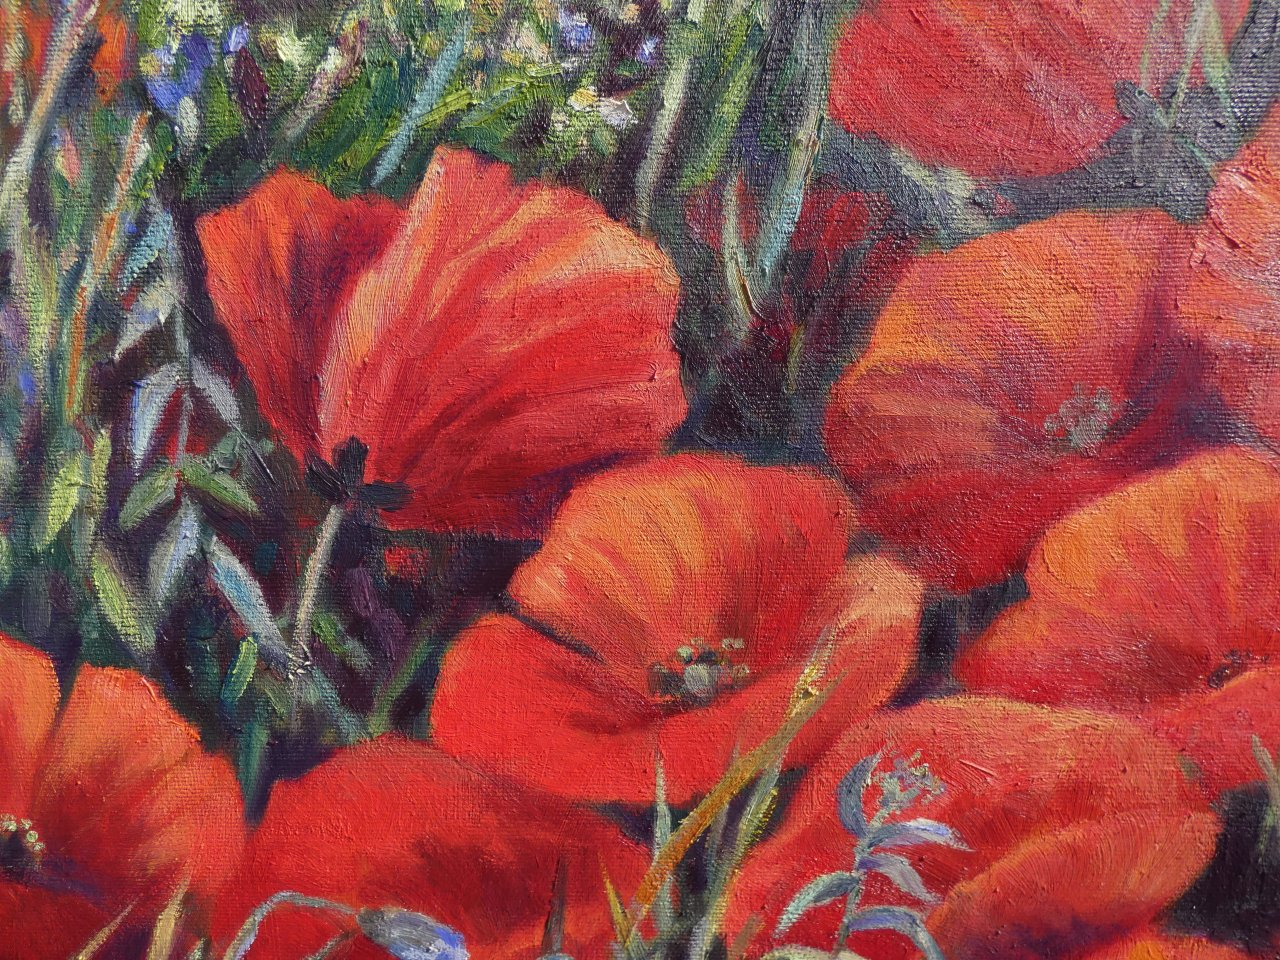 Field detail with red poppies, vibrant colors and energy